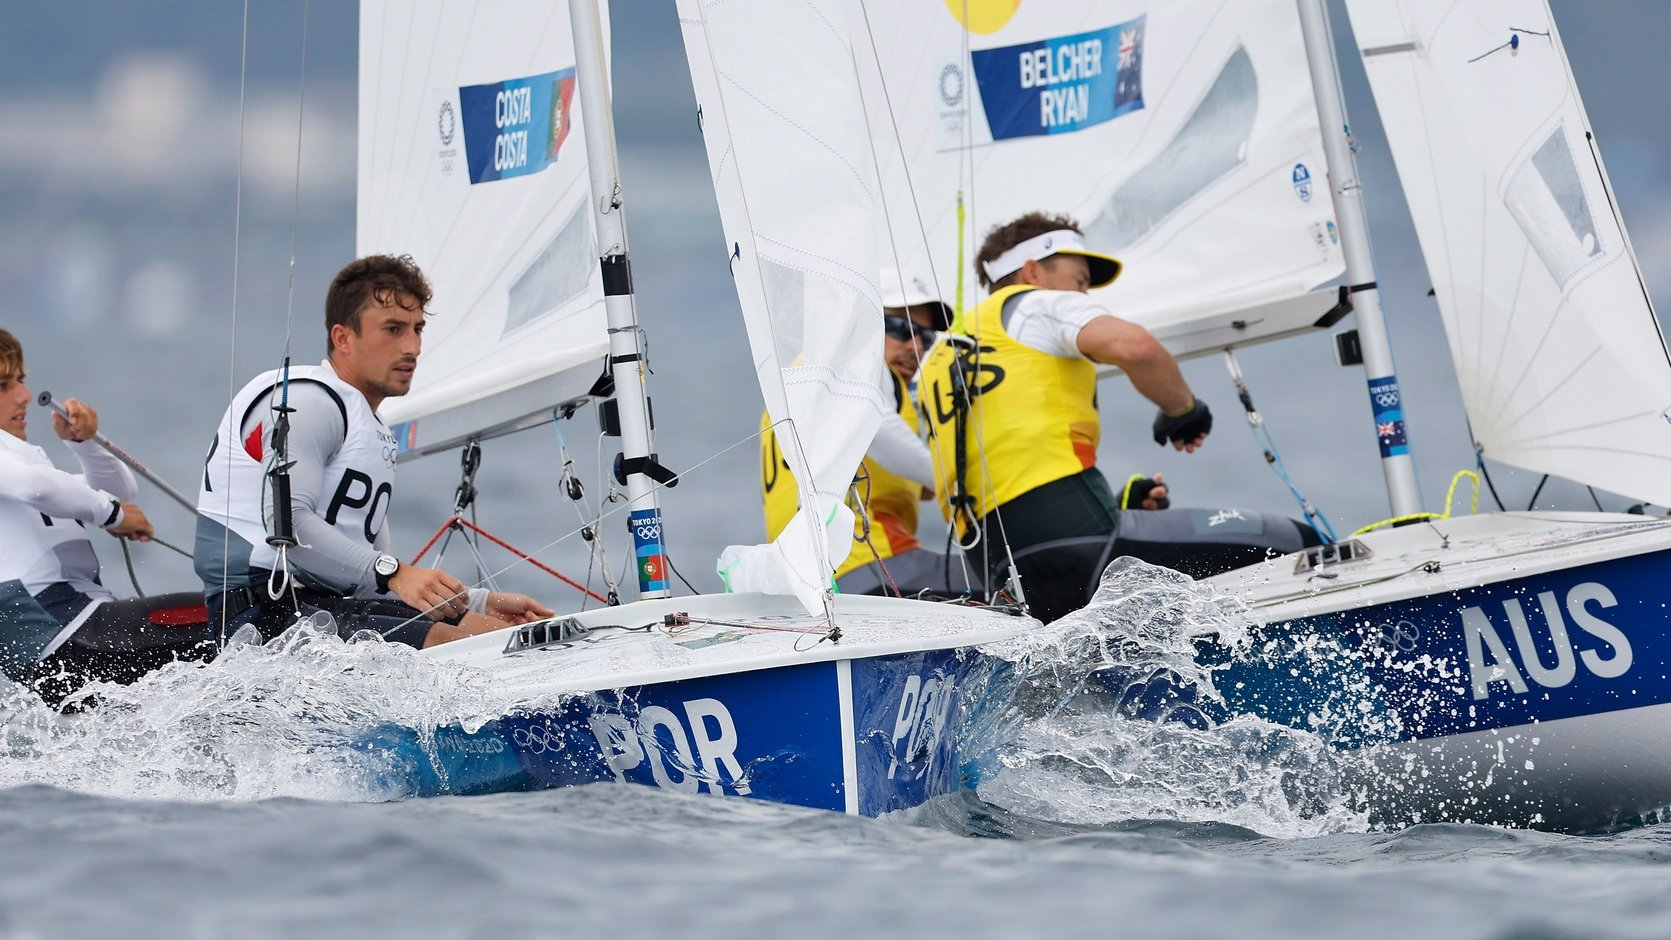 epa09379172 Diogo Costa and Pedro Costa of Portugal (L)  compete with Mathew Belcher and Will Ryan of Australia (R) in the Men's 470 Class discipline in the Sailing events of the Tokyo 2020 Olympic Games in Enoshima, Japan, 30 July 2021.  EPA/CJ GUNTHER